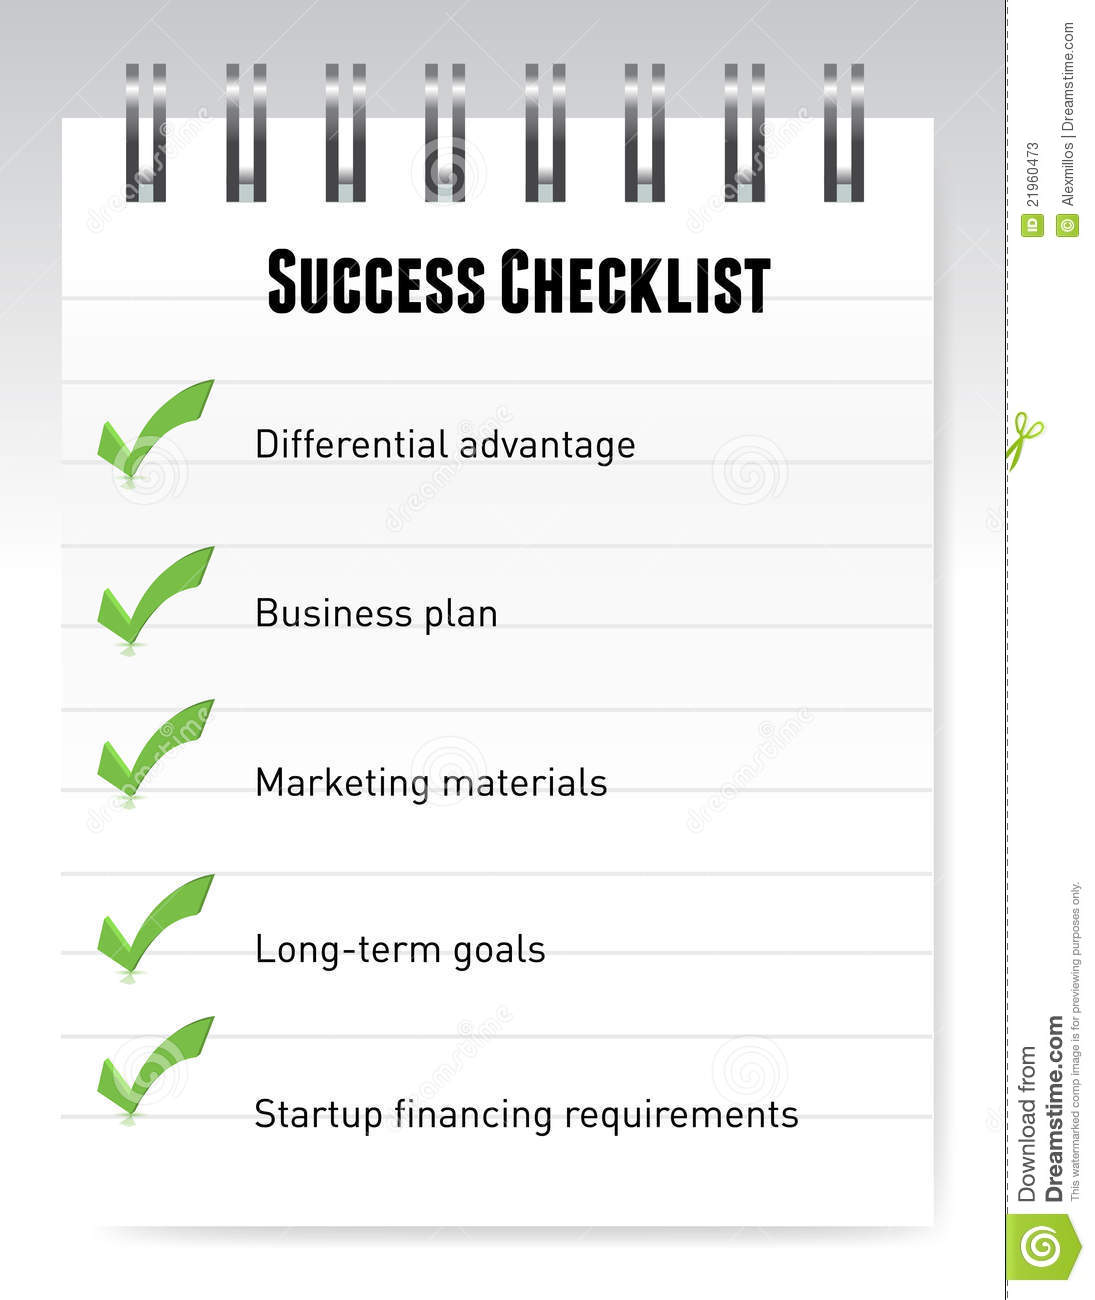 Success Checklist Notepad Illustration Design Stock Photos - Image ...